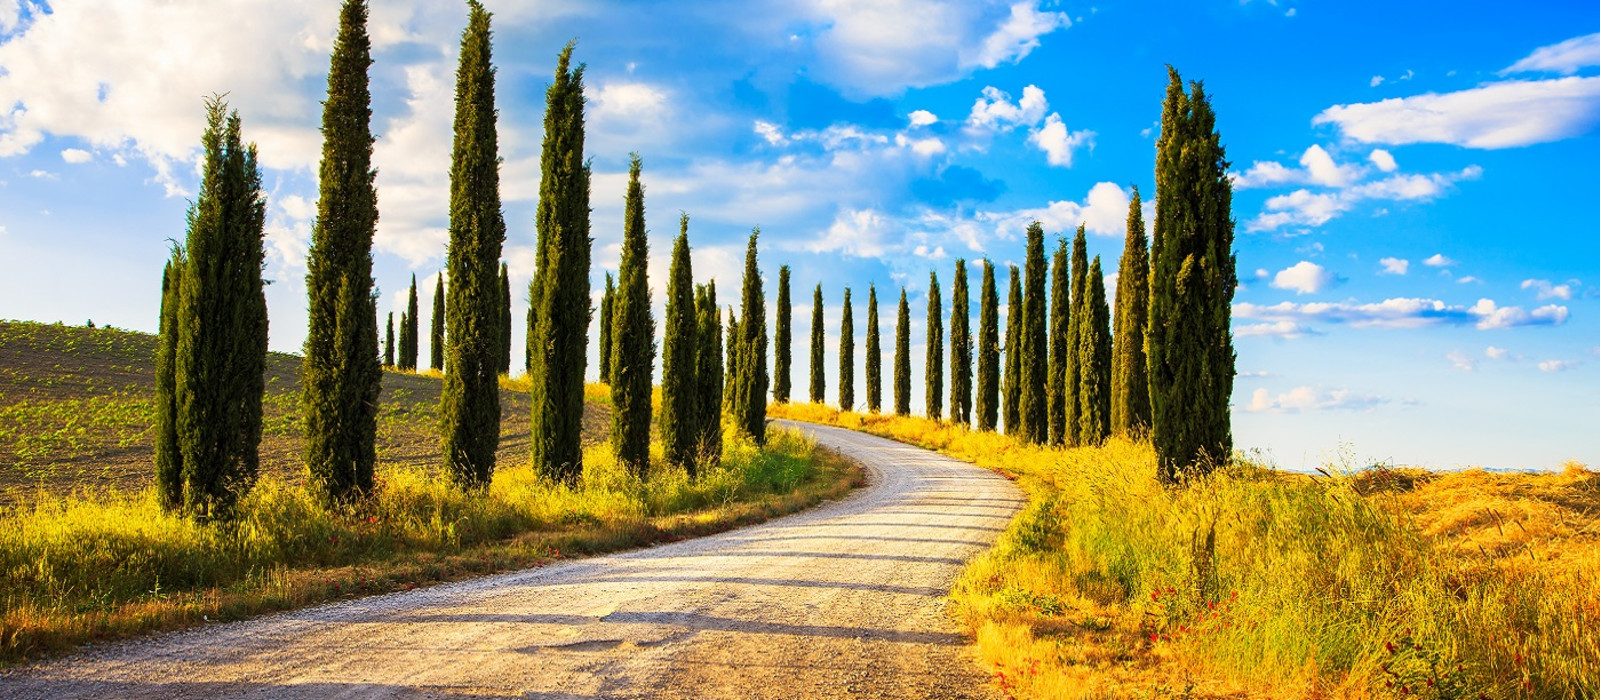 Italian cypress trees rows and a white road rural landscape. Siena, Tuscany, Italy, Europe